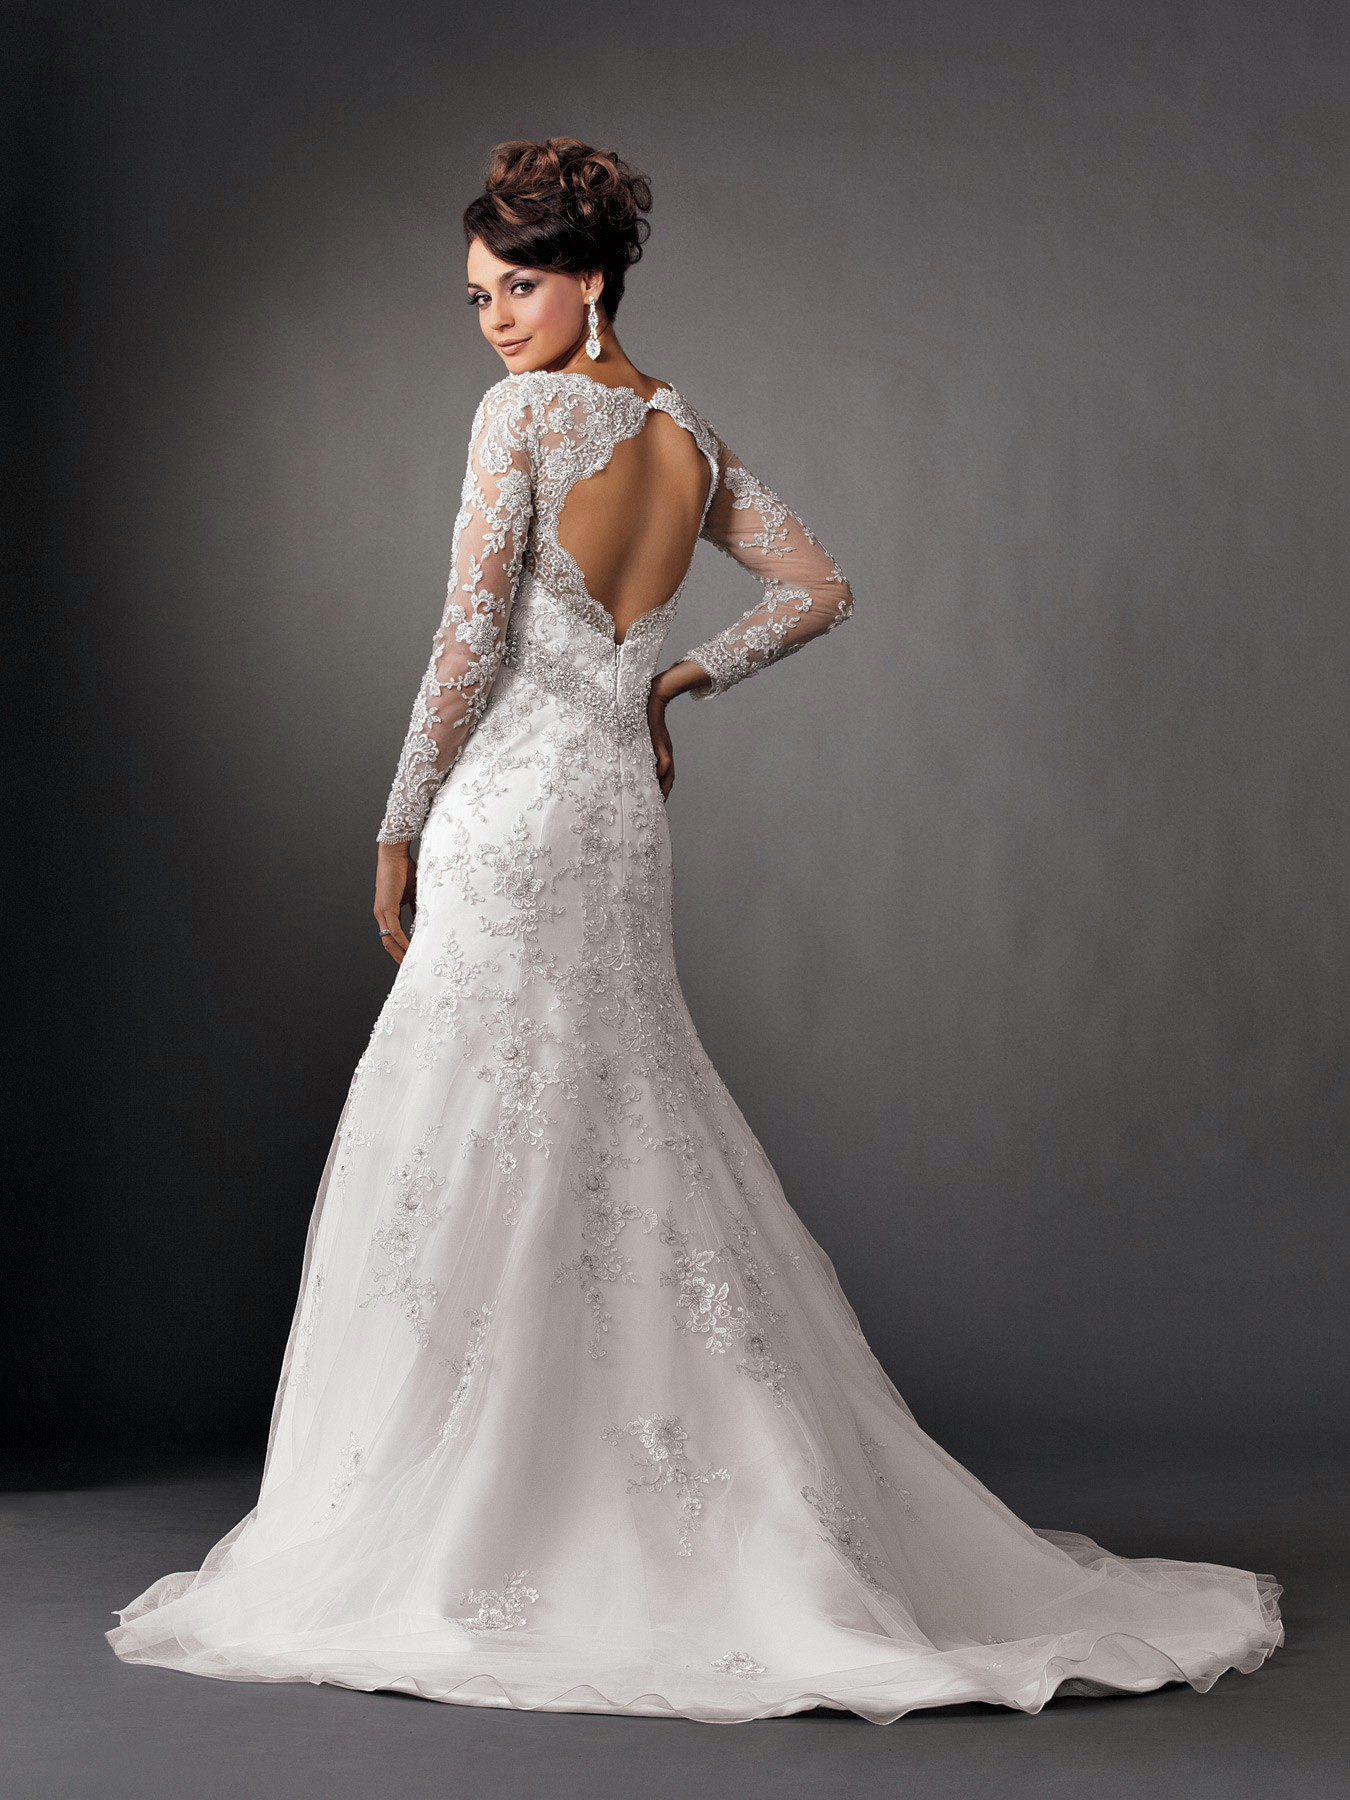 lace sleeved wedding dresses 2014 2015 wedding dress trends lace sleeves dipped 5371